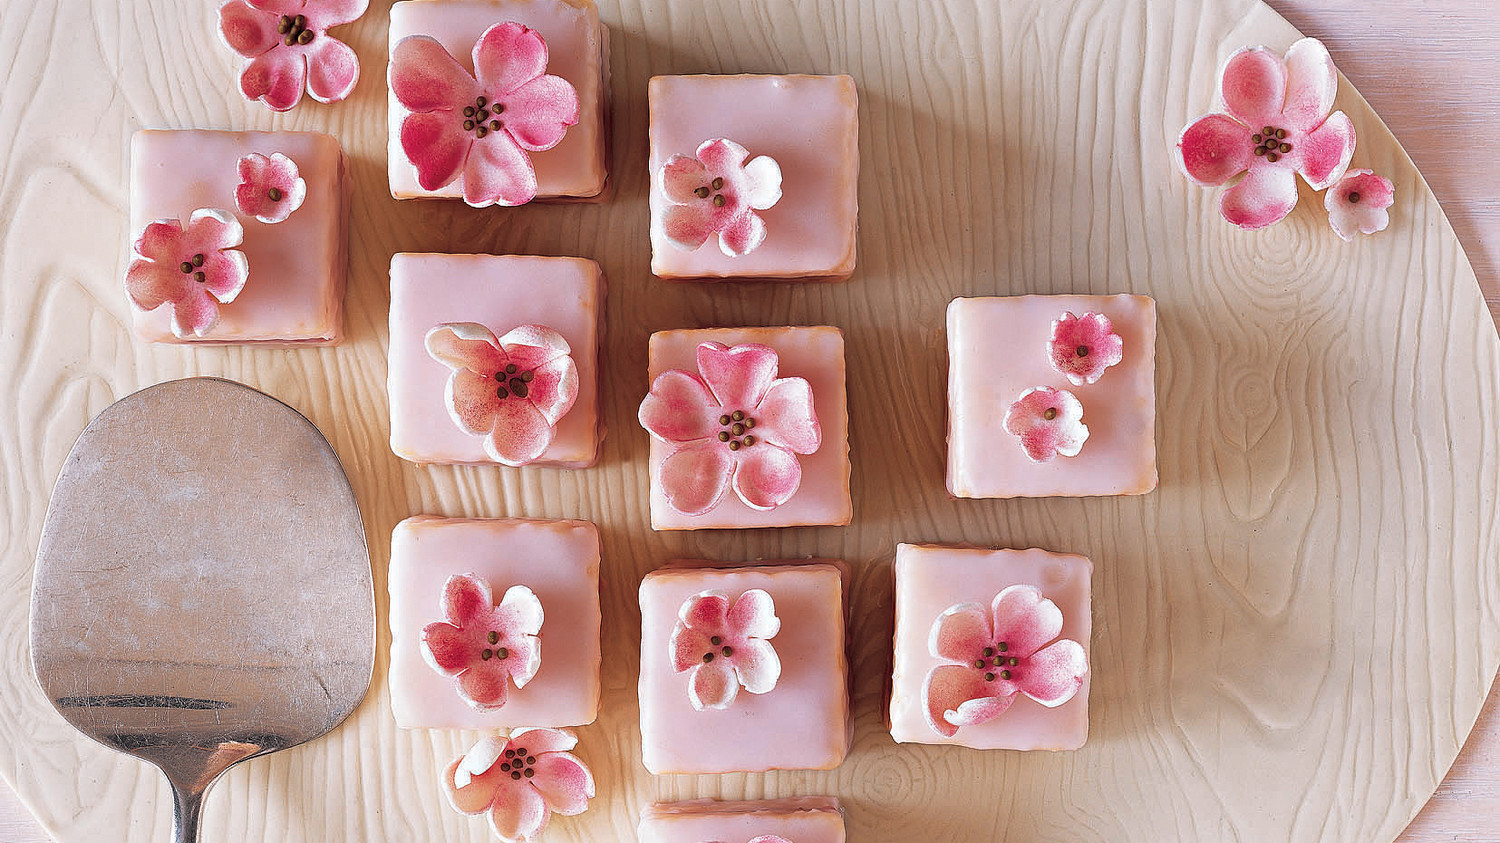 Spring Shower Almond Petits Fours Recipe Martha Stewart